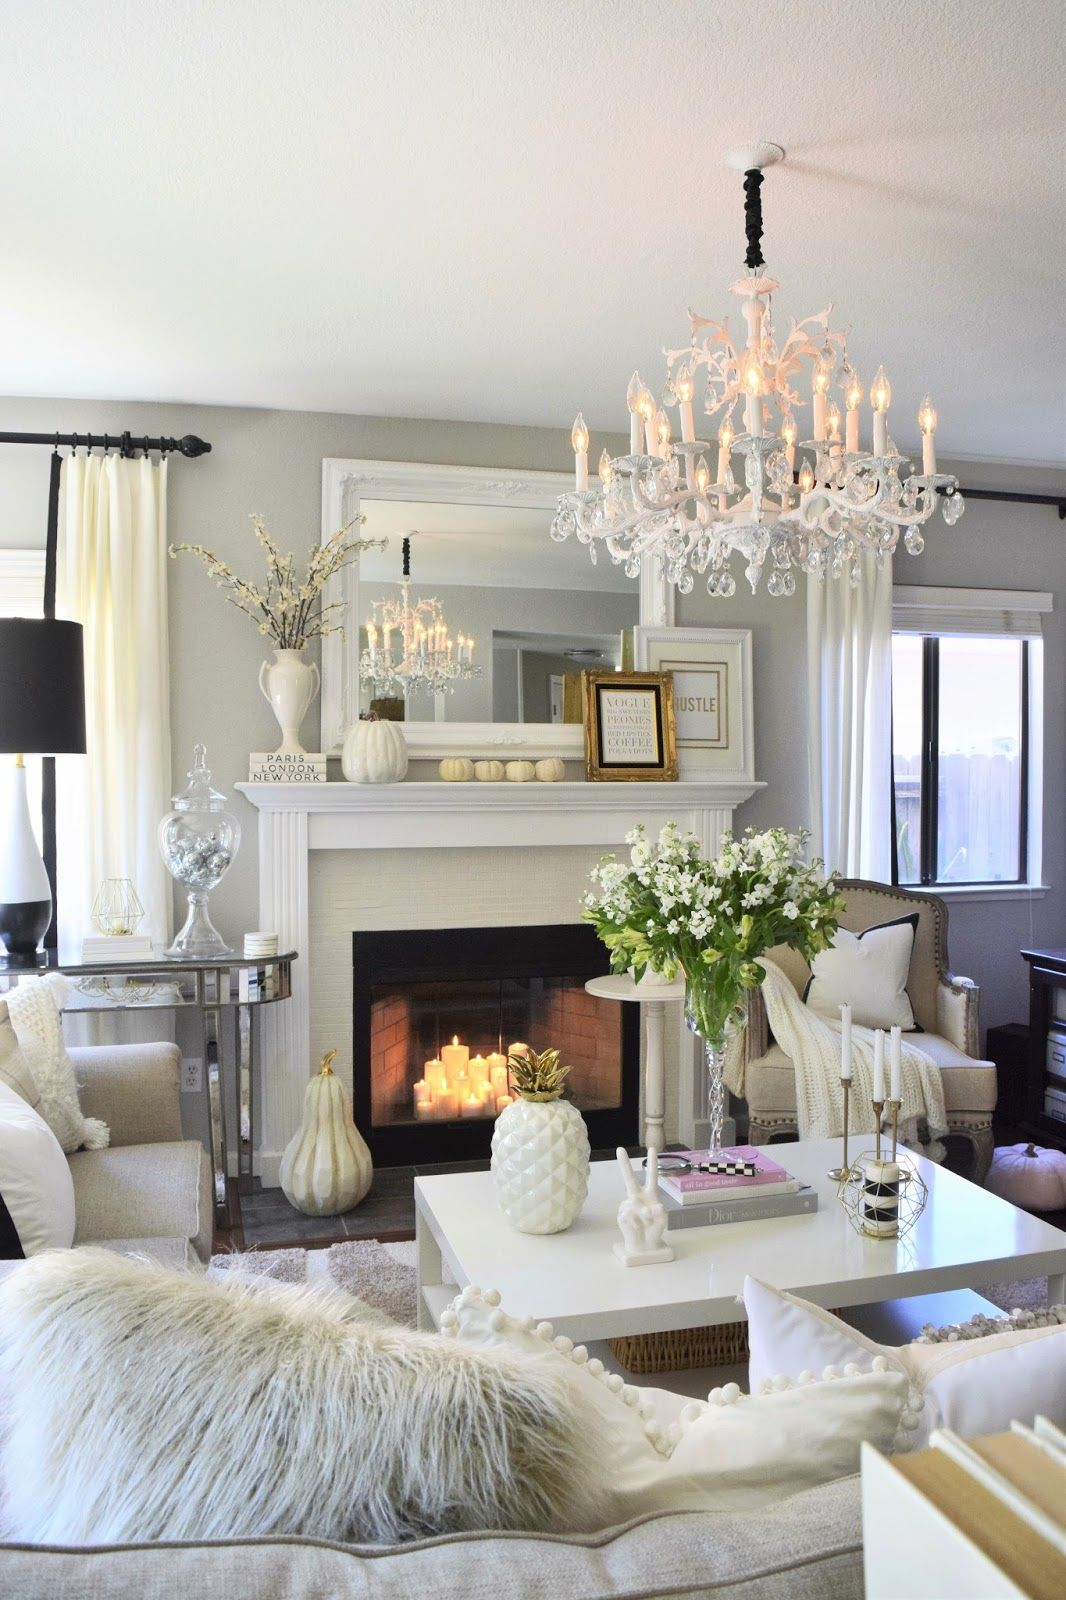 Design Of Furniture For Living Room: The Case For Decorating With Neutrals